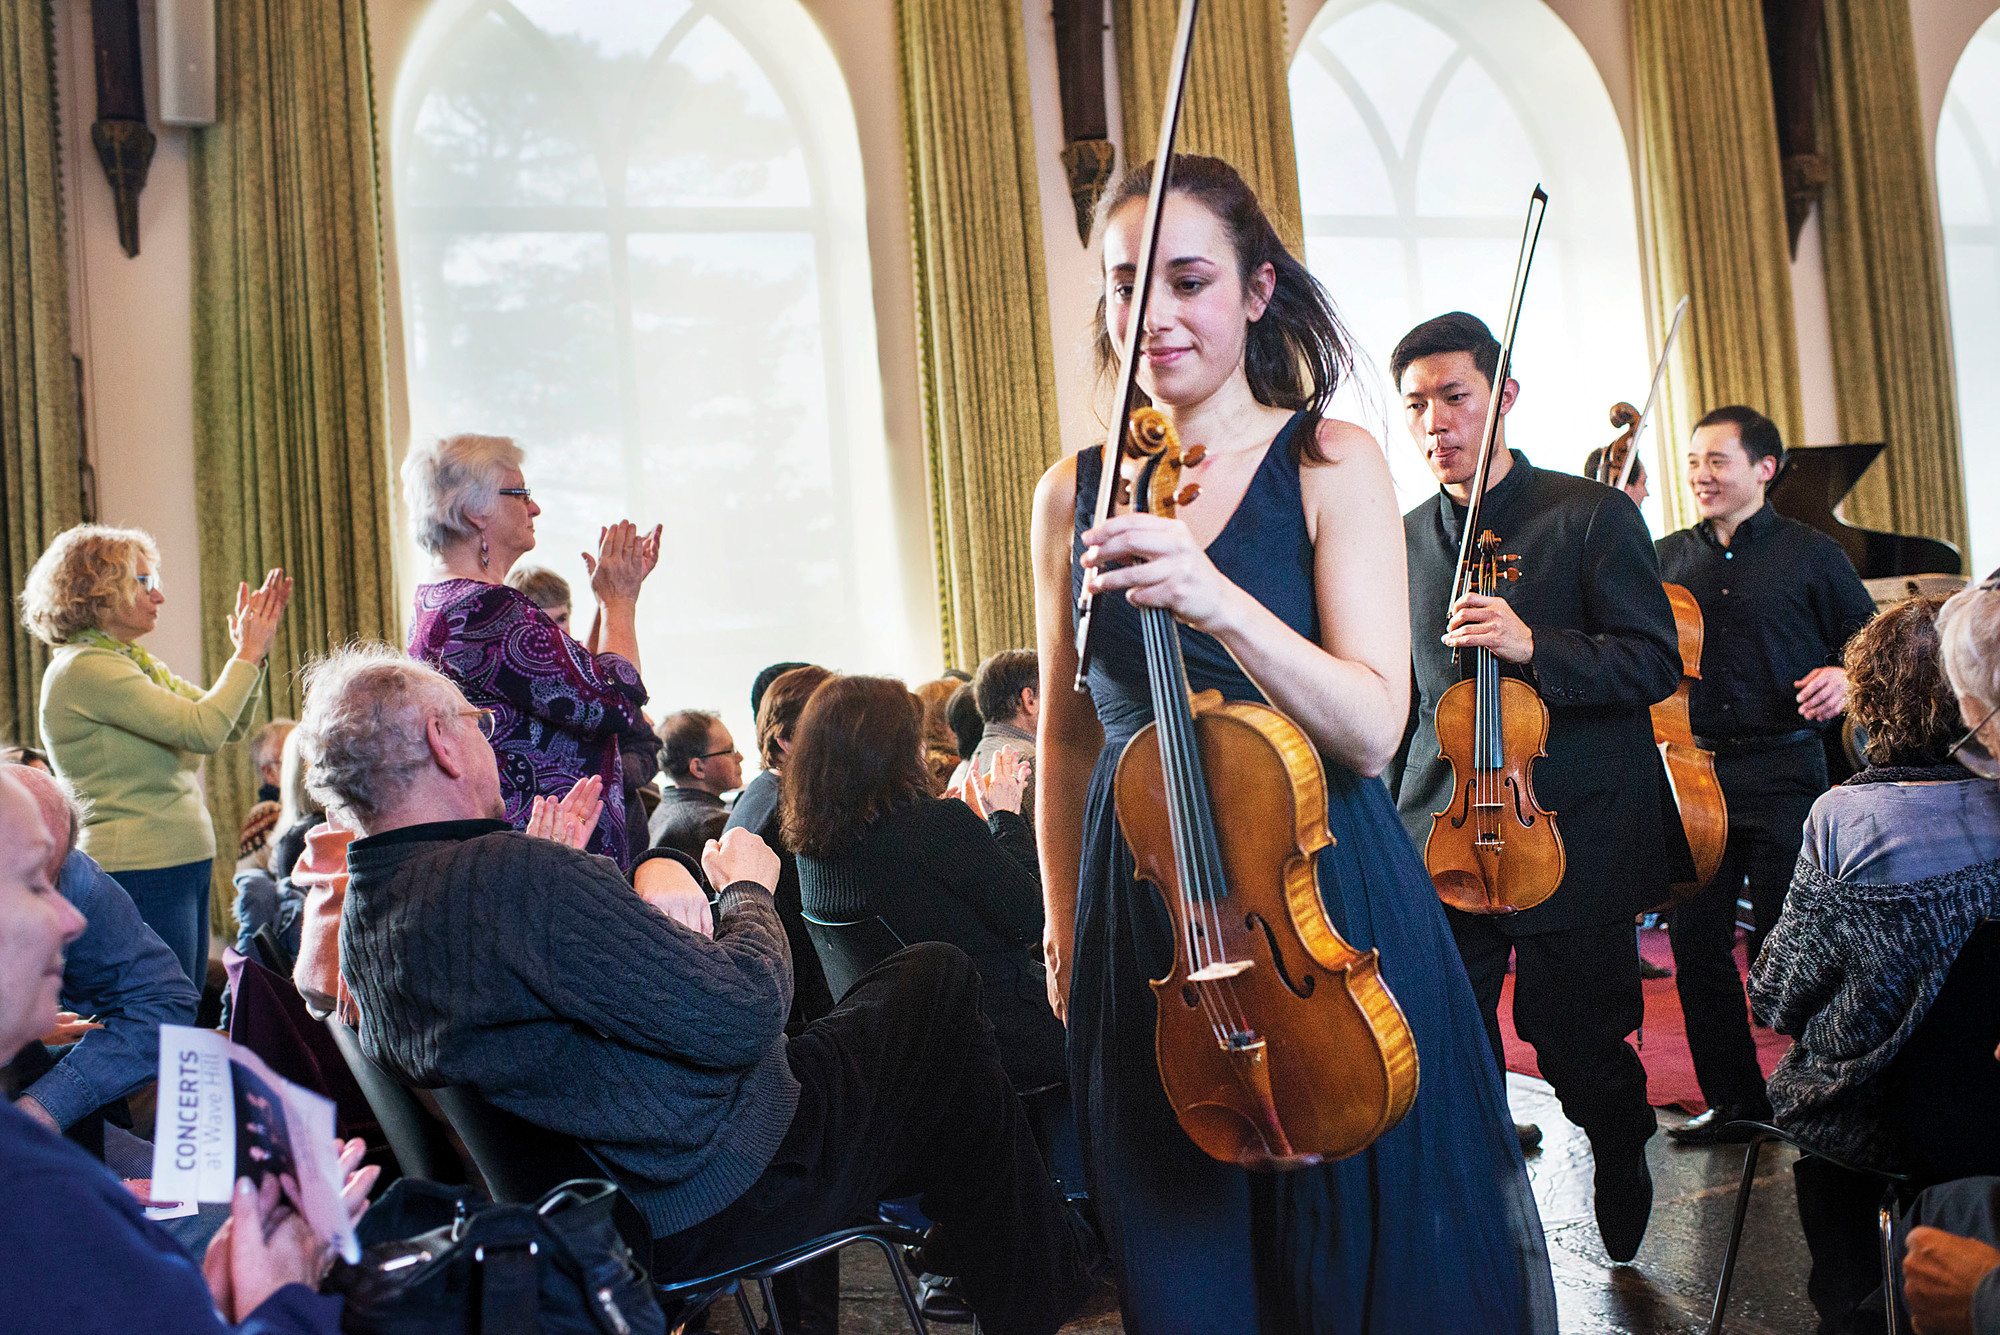 Violist Jessica Bodner leads fellow musicians Daniel Chong and Kee-Hyun Kim out of the concert hall.